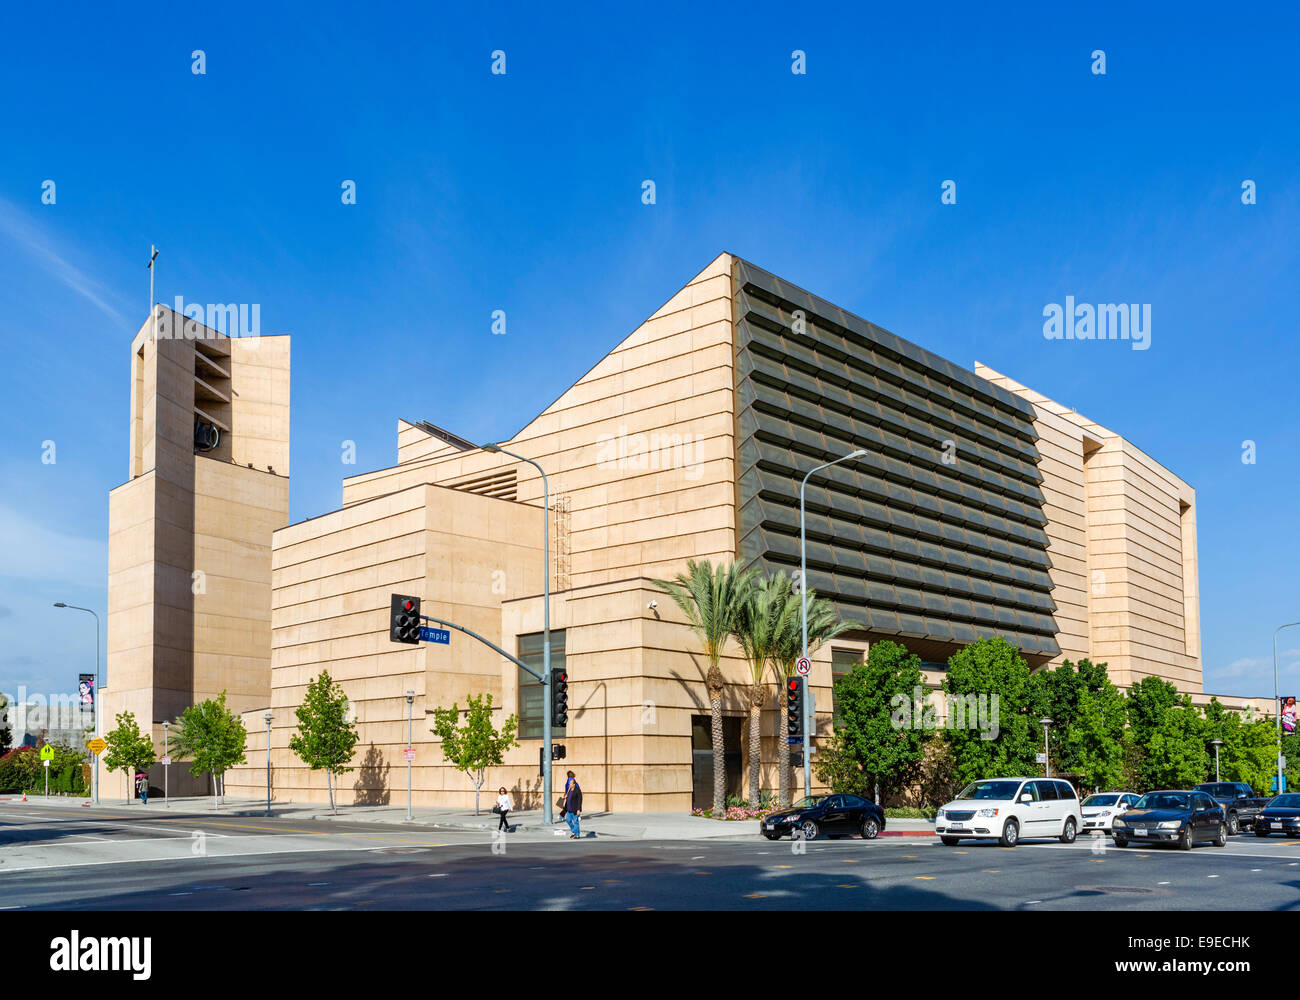 Cathedral of Our Lady of the Angels, Temple Street, downtown Los Angeles, California, USA - Stock Image